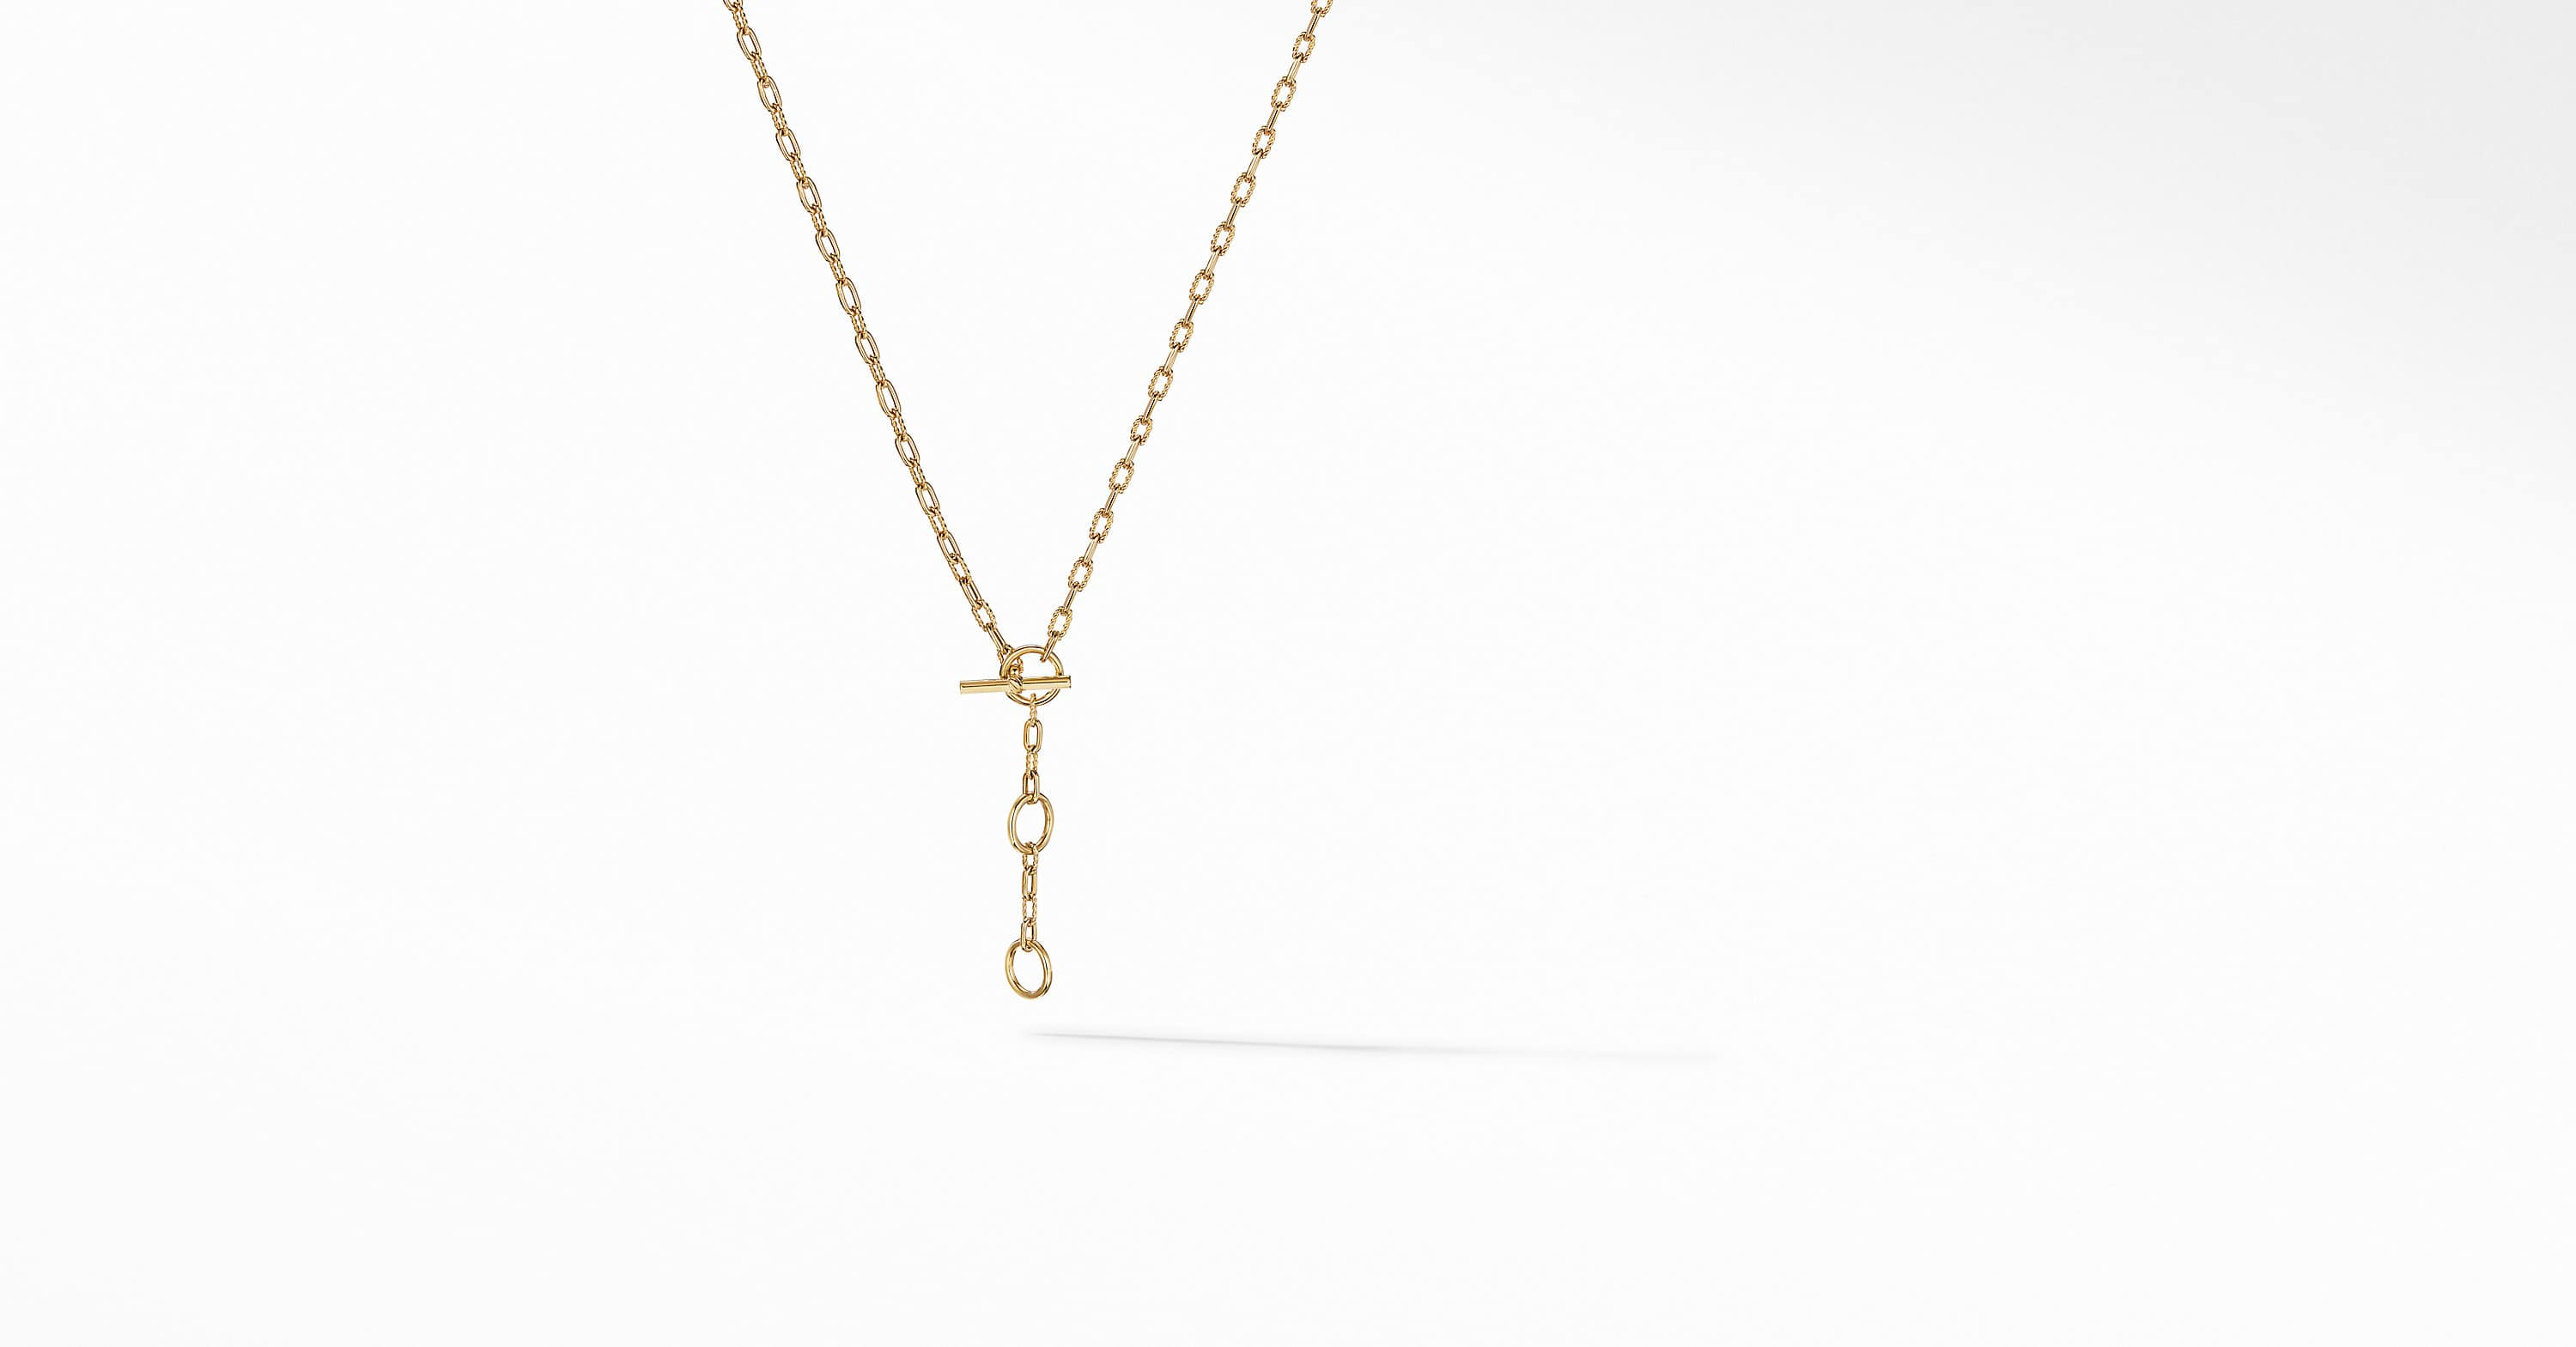 DY Madison Three Ring Chain Necklace in 18K Yellow Gold